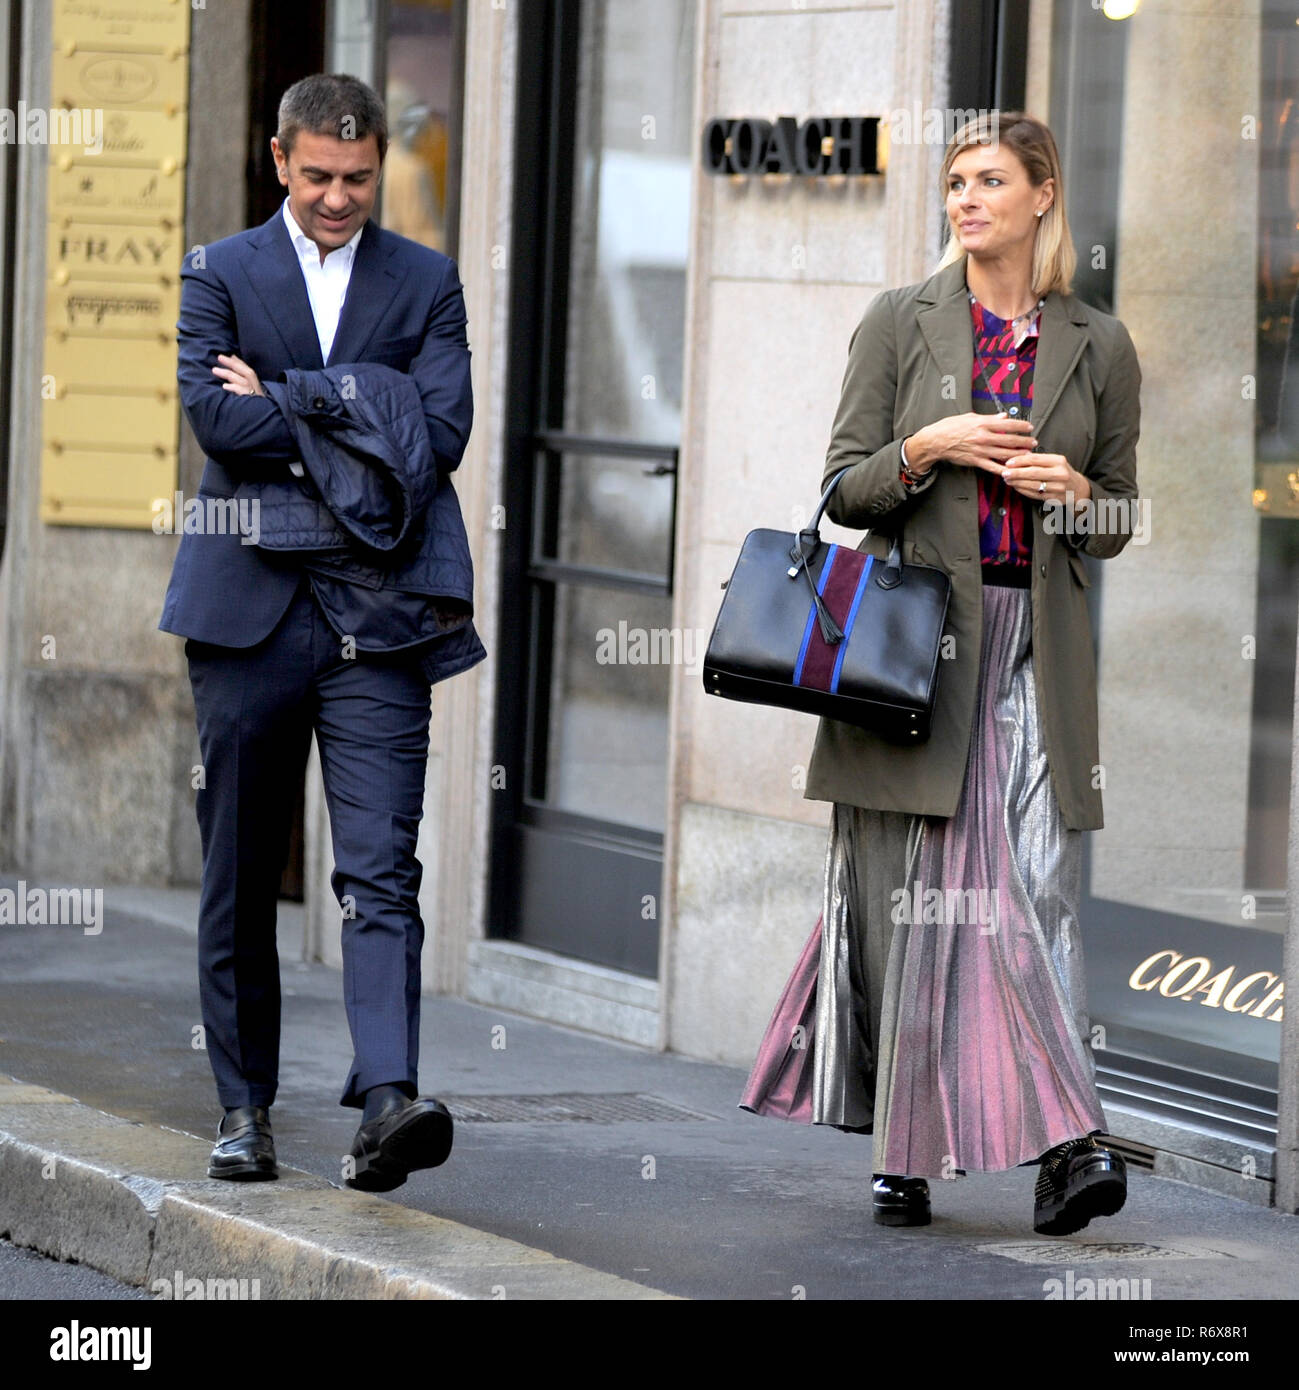 e574e7ad Martina Colombari and her husband Alessandro Costacurta walking through the  streets of Milan, Italy. Featuring: Martina Colombari, Alessandro  Costacurta ...